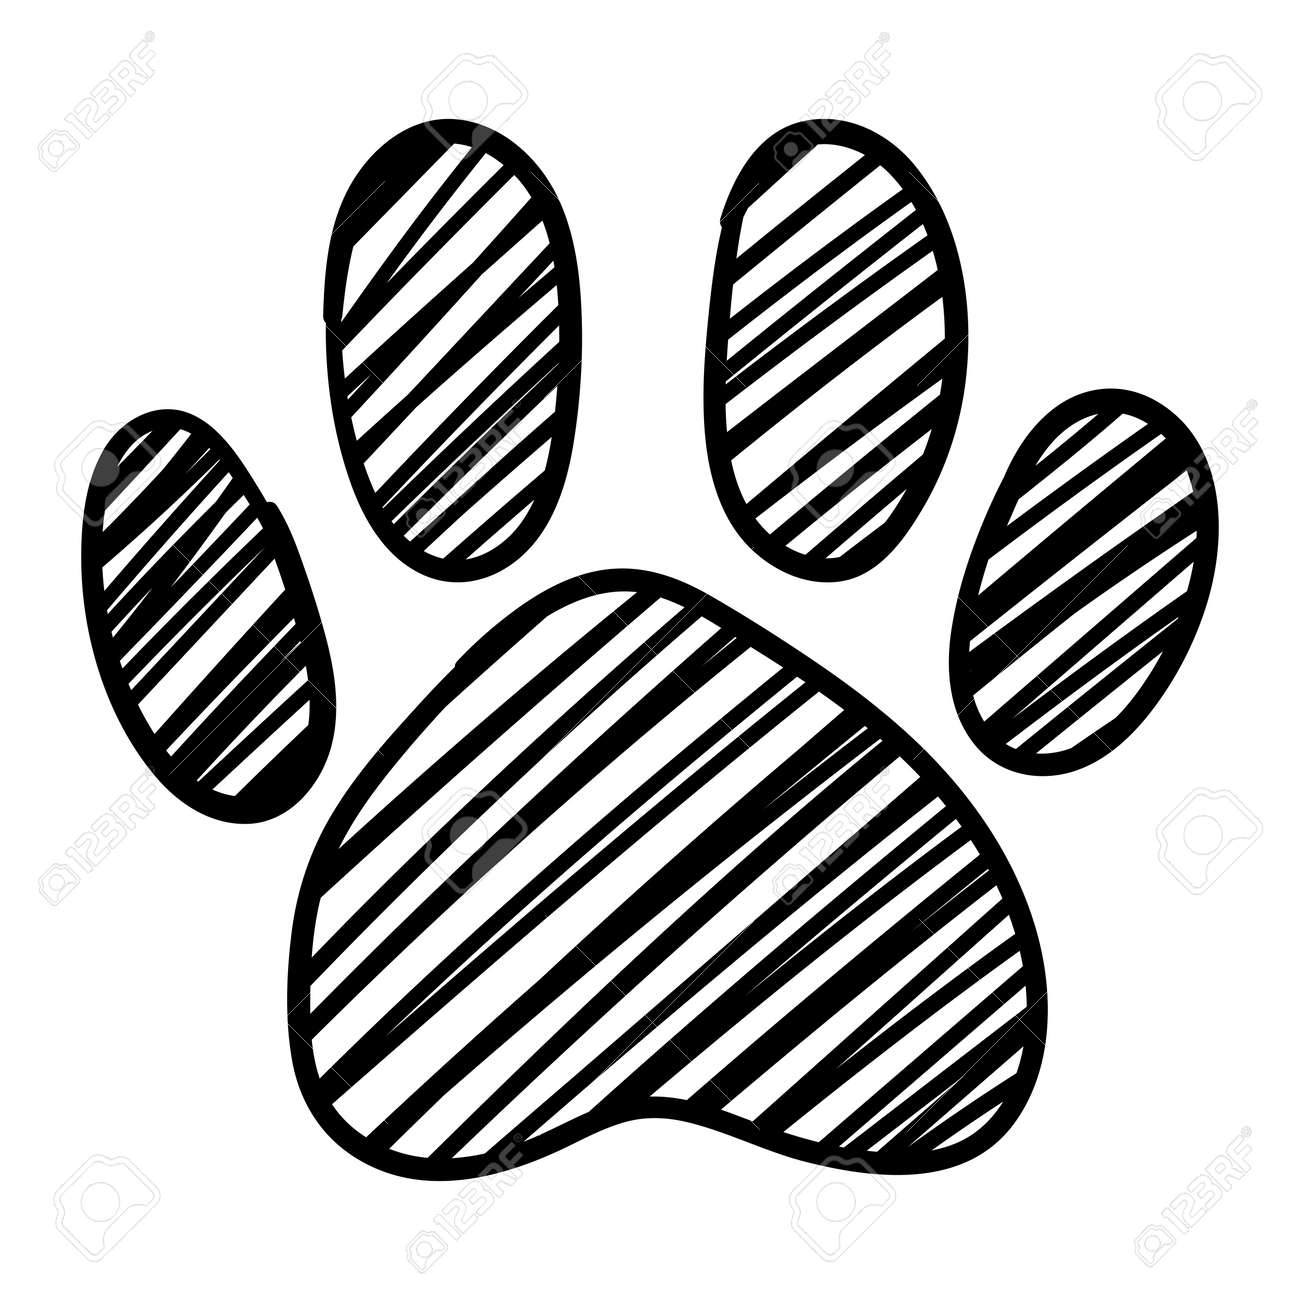 Monochrome Black And White Dog Cat Pet Animal Paw Foot Isolated